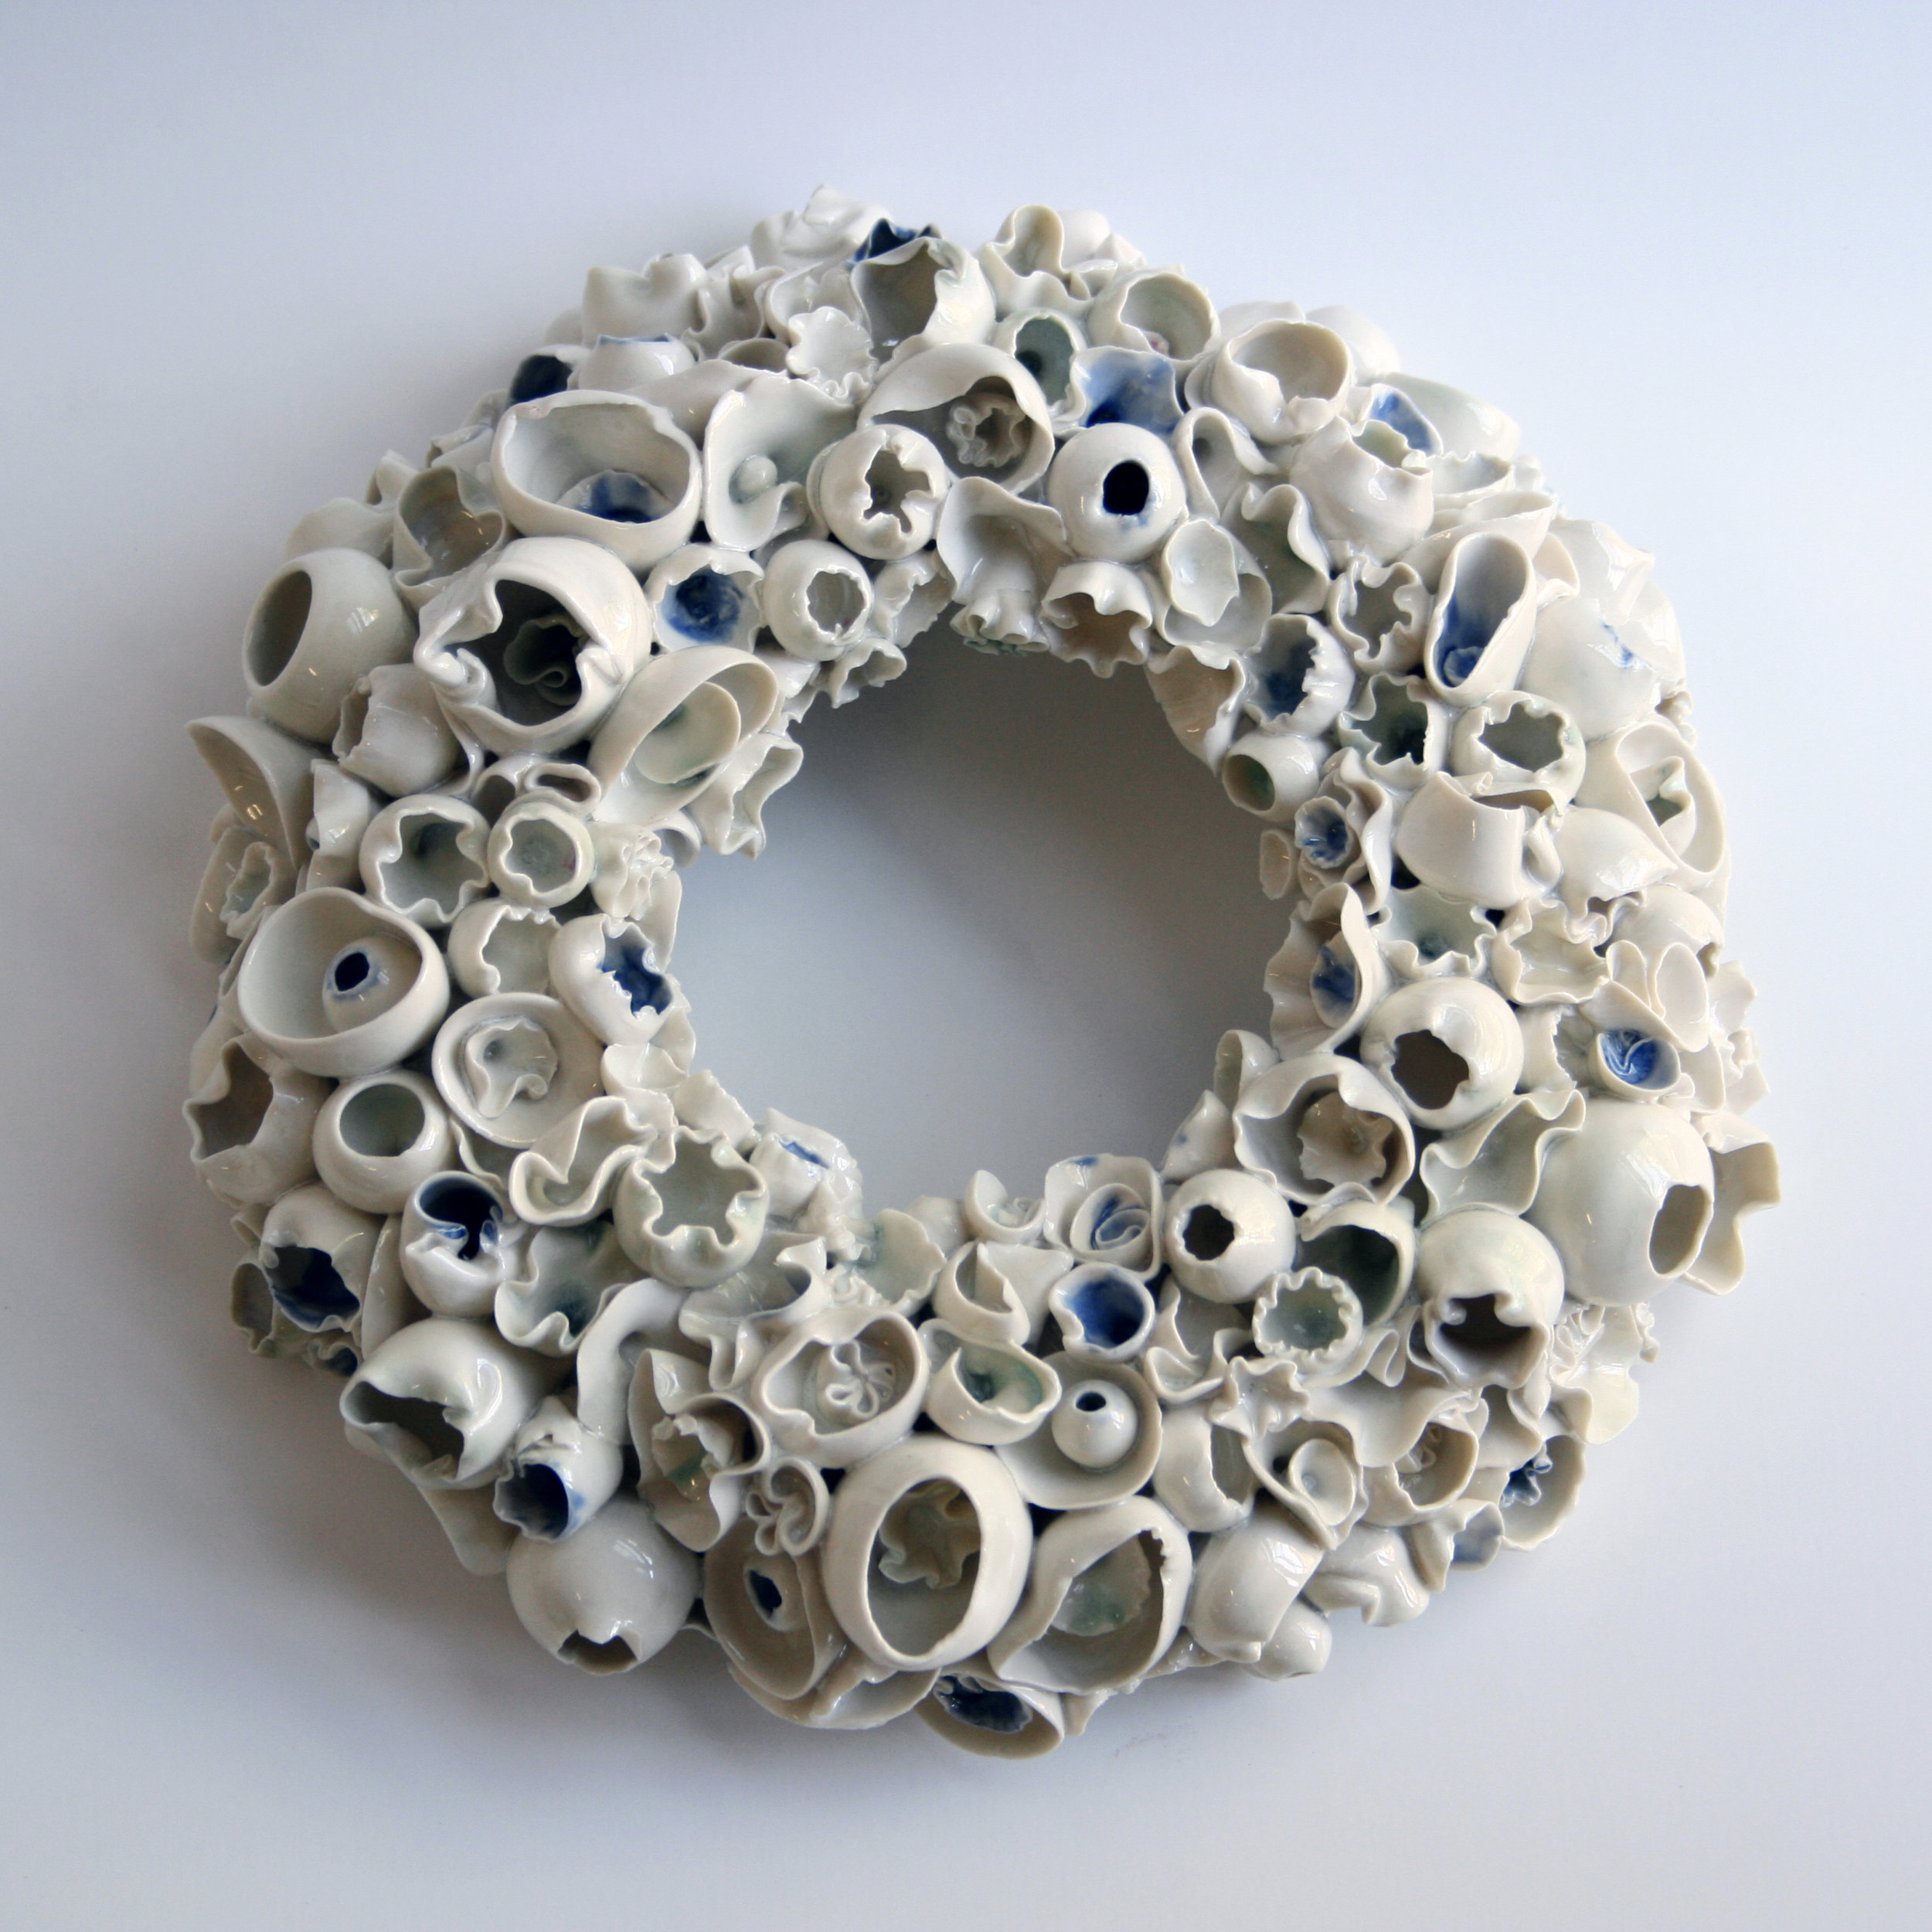 Seashells - Wreath Medium for store.jpg